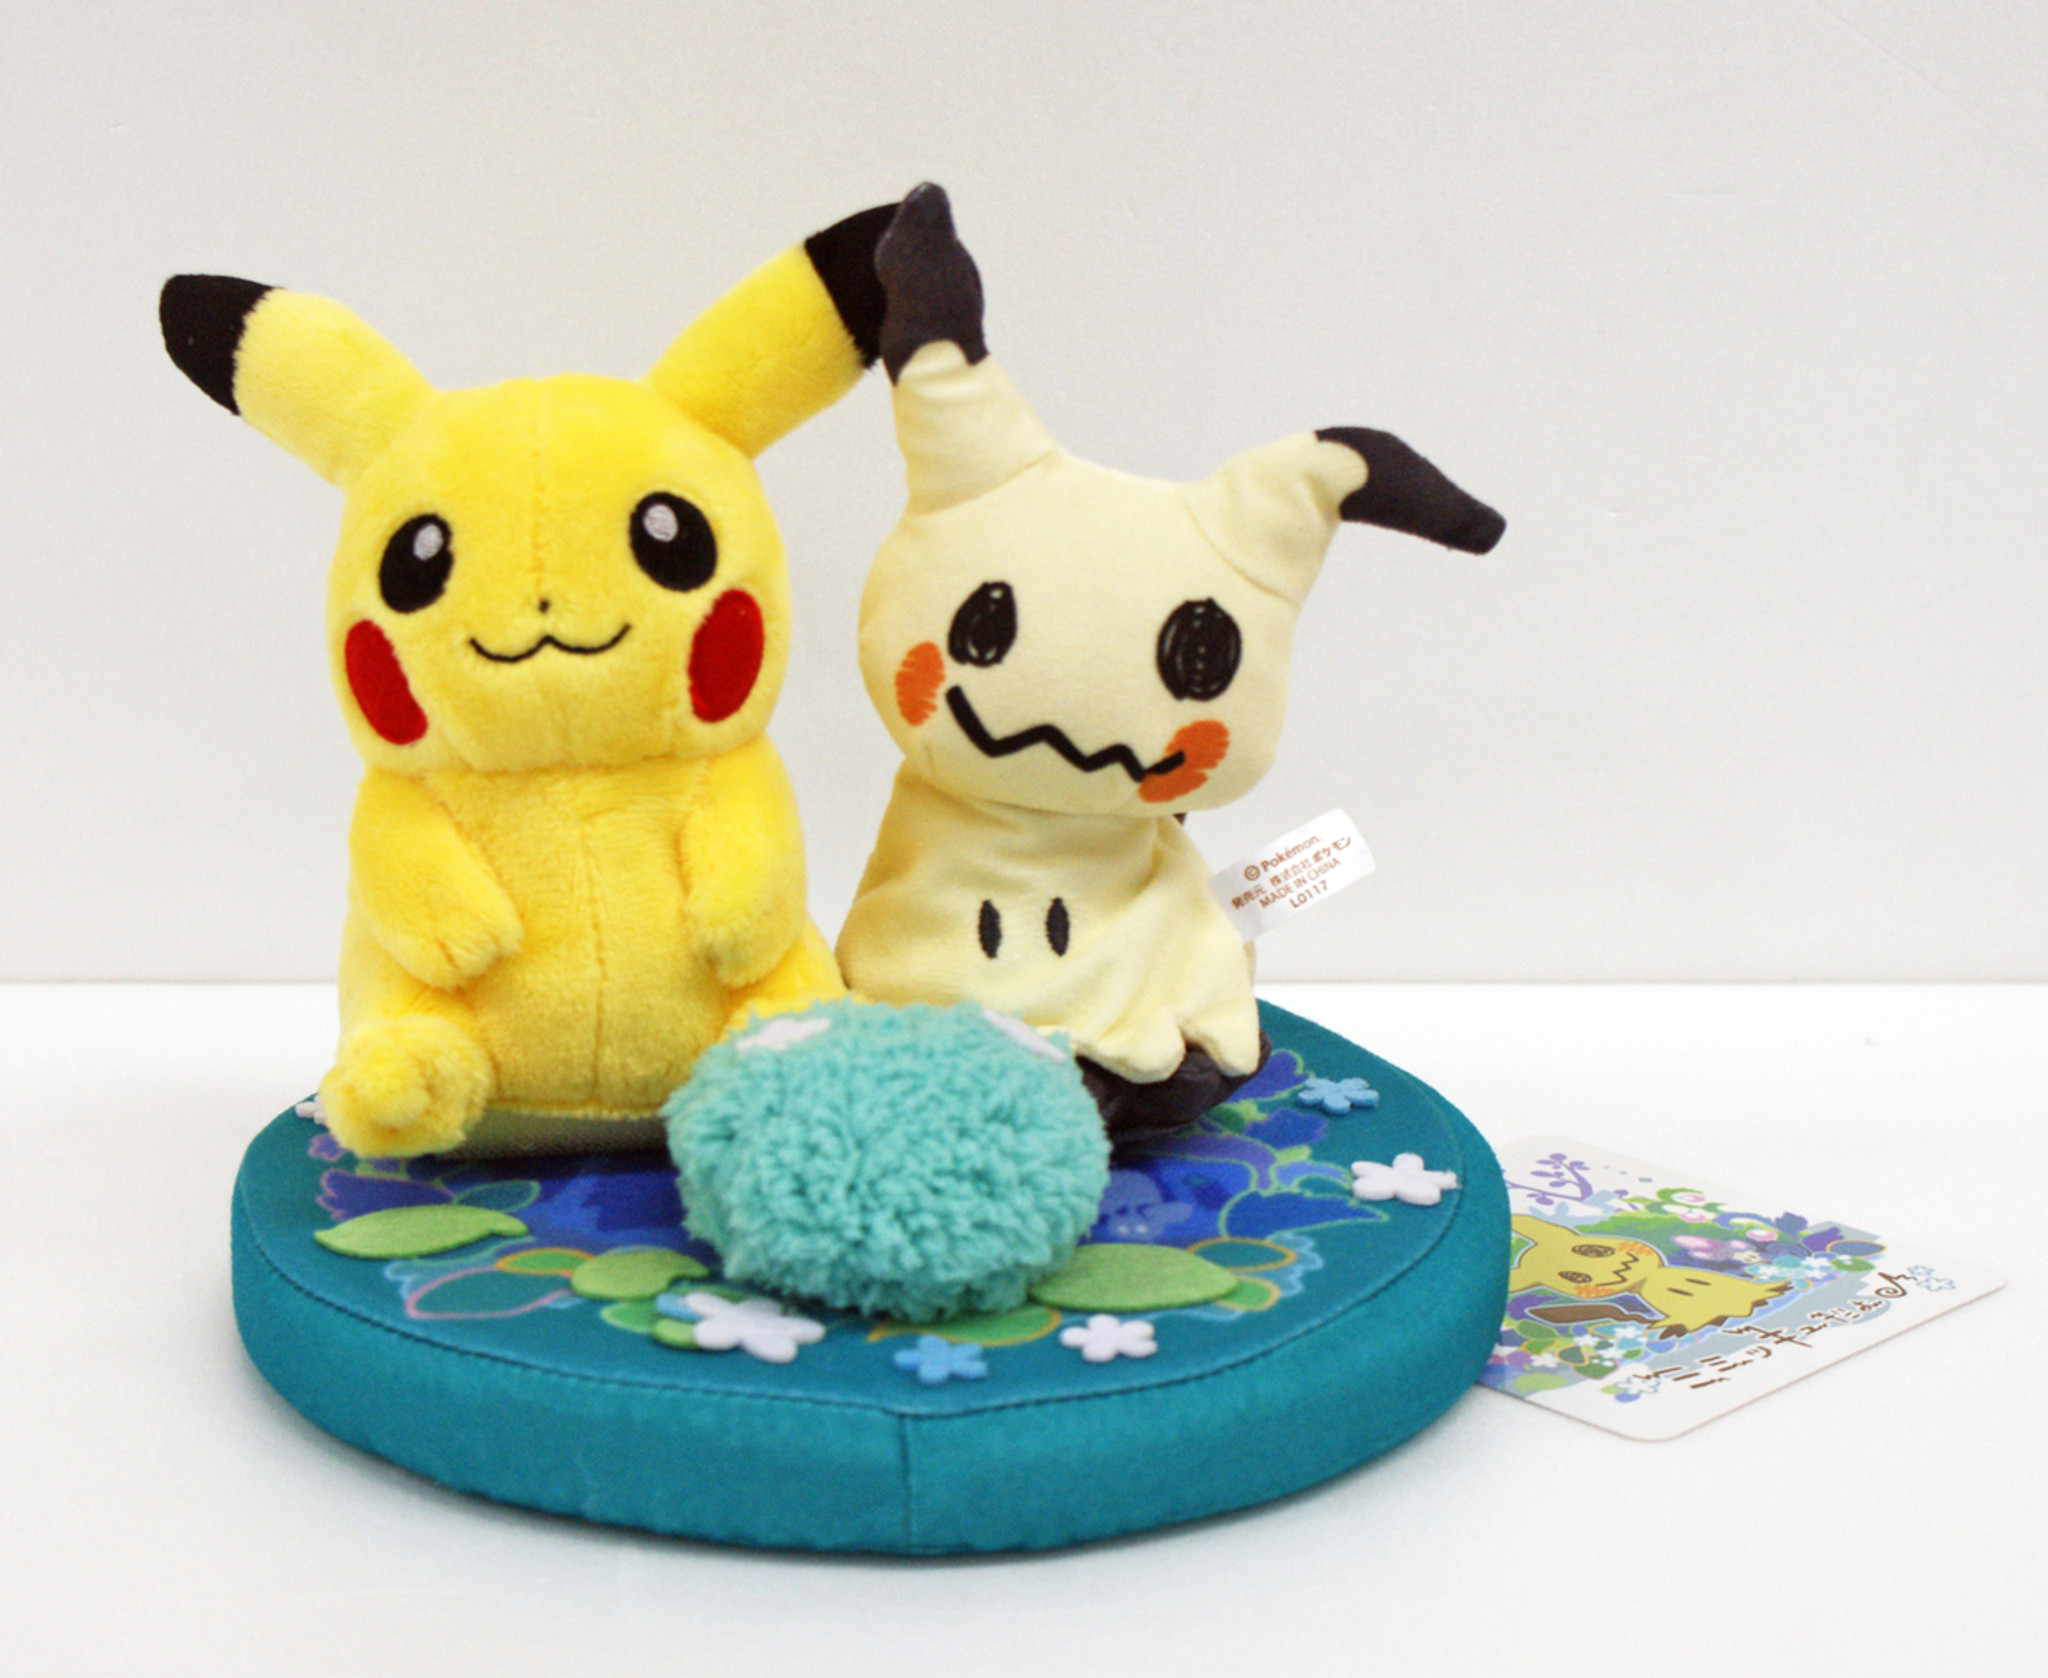 A plush showing Mimikyu and Pikachu together.